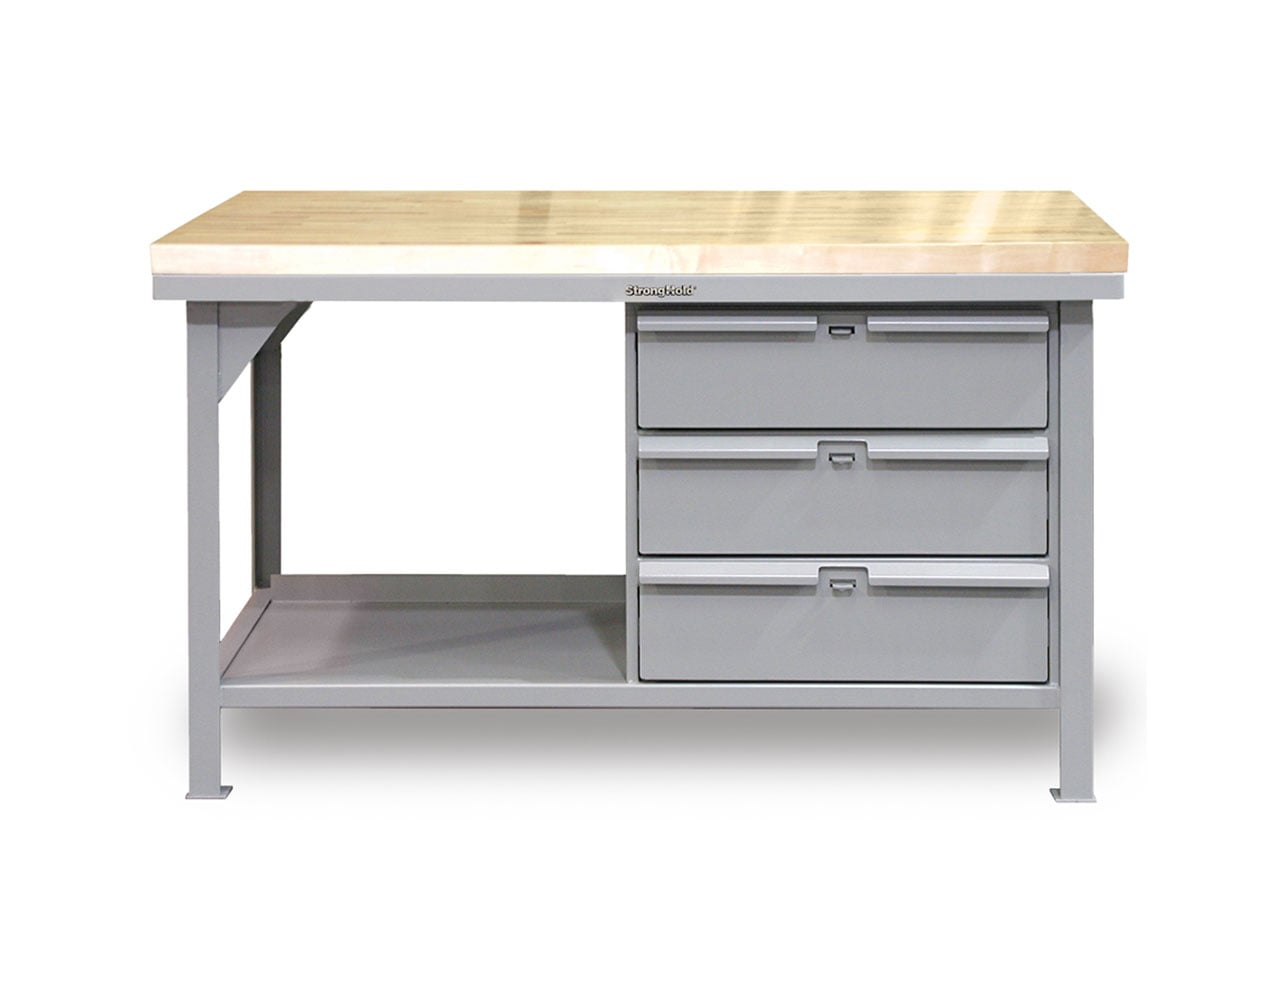 Extra Heavy Duty 7 GA Shop Table with Maple Top, 3 Drawers, 1 Shelf – 60 In. W x 36 In. D x 34 In. H